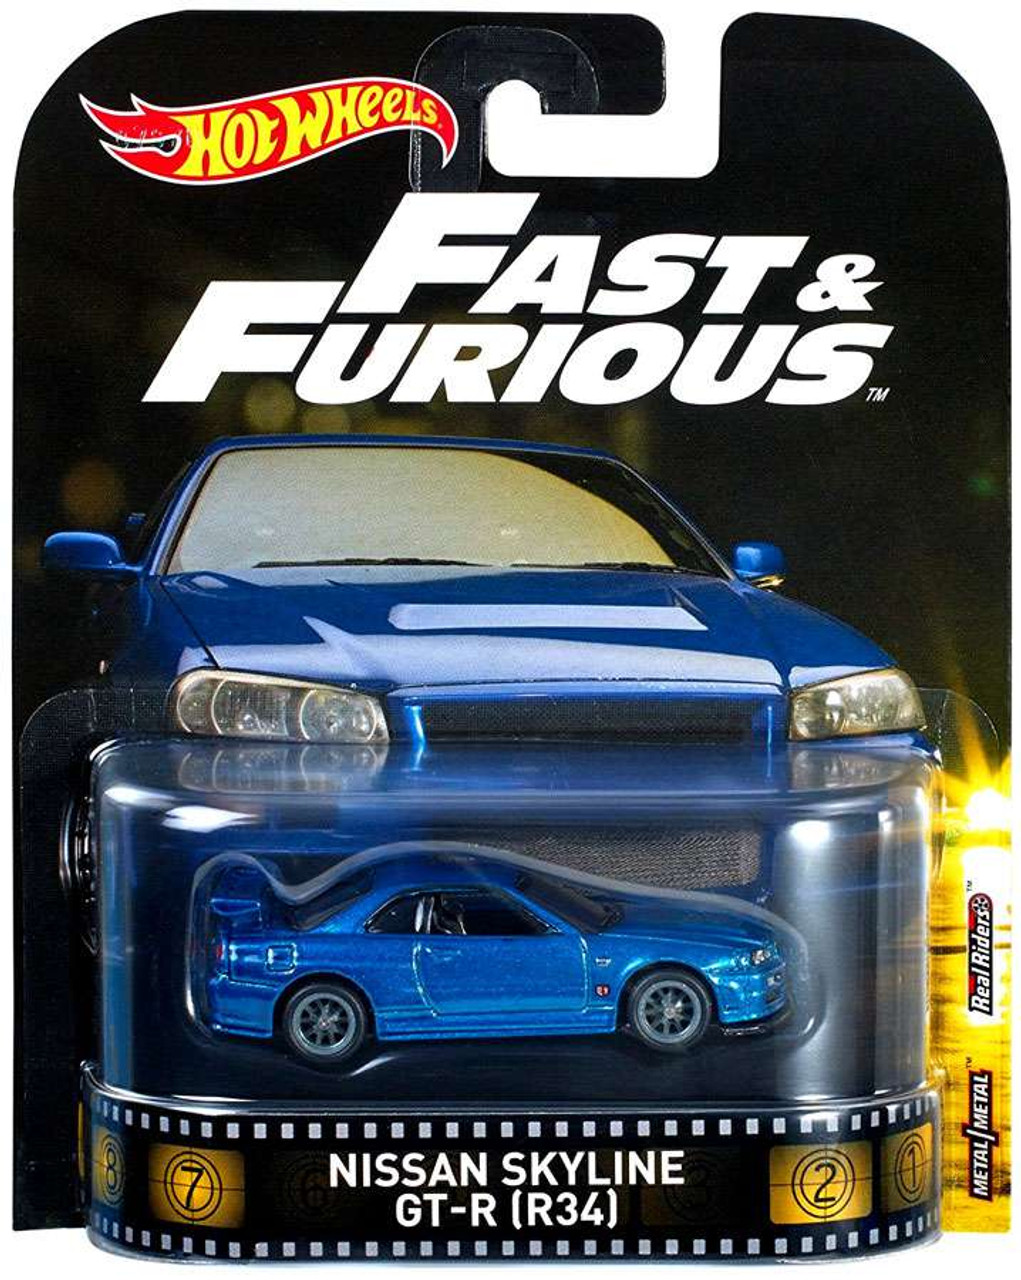 Hot Wheels Fast Furious Nissan Skyline Gt R R34 Diecast Car Mattel Toys Toywiz Hellblade ii, stray, little devil inside, fortnite, avowed, the artful escape и ghostwire: hot wheels fast furious nissan skyline